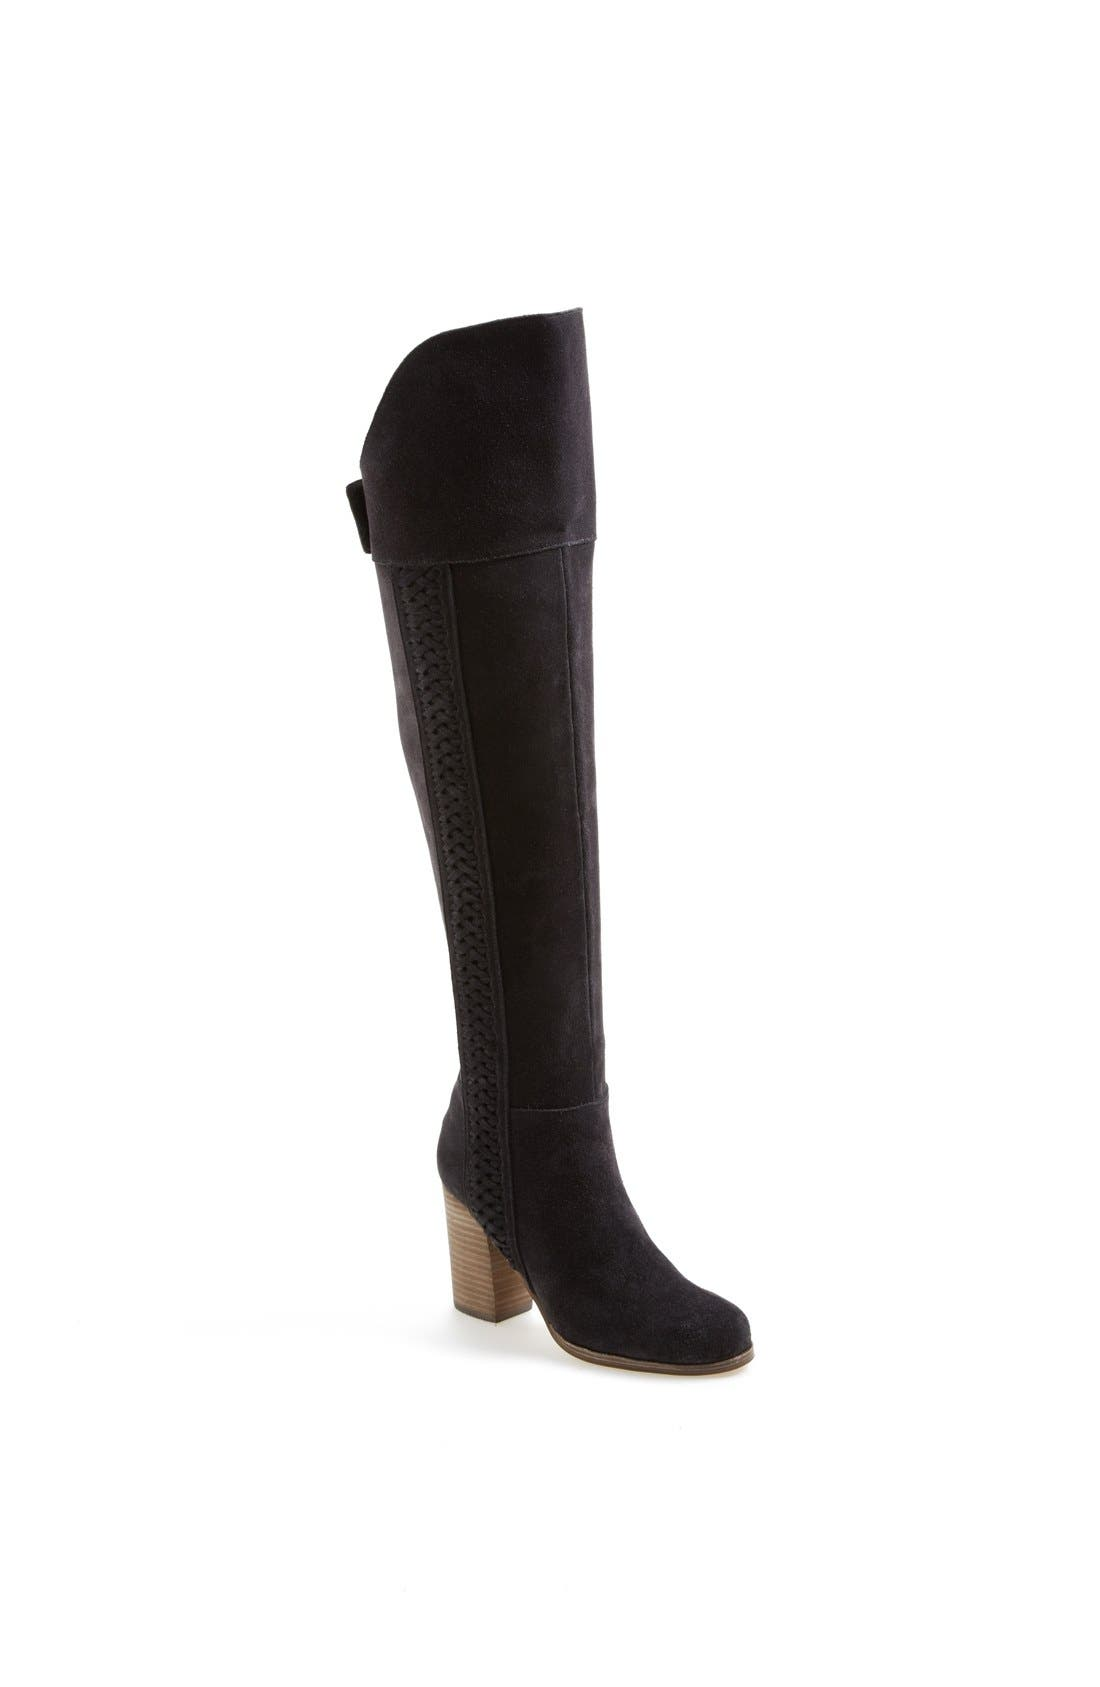 Main Image - DV by Dolce Vita 'Myer' Over the Knee Boot (Women)